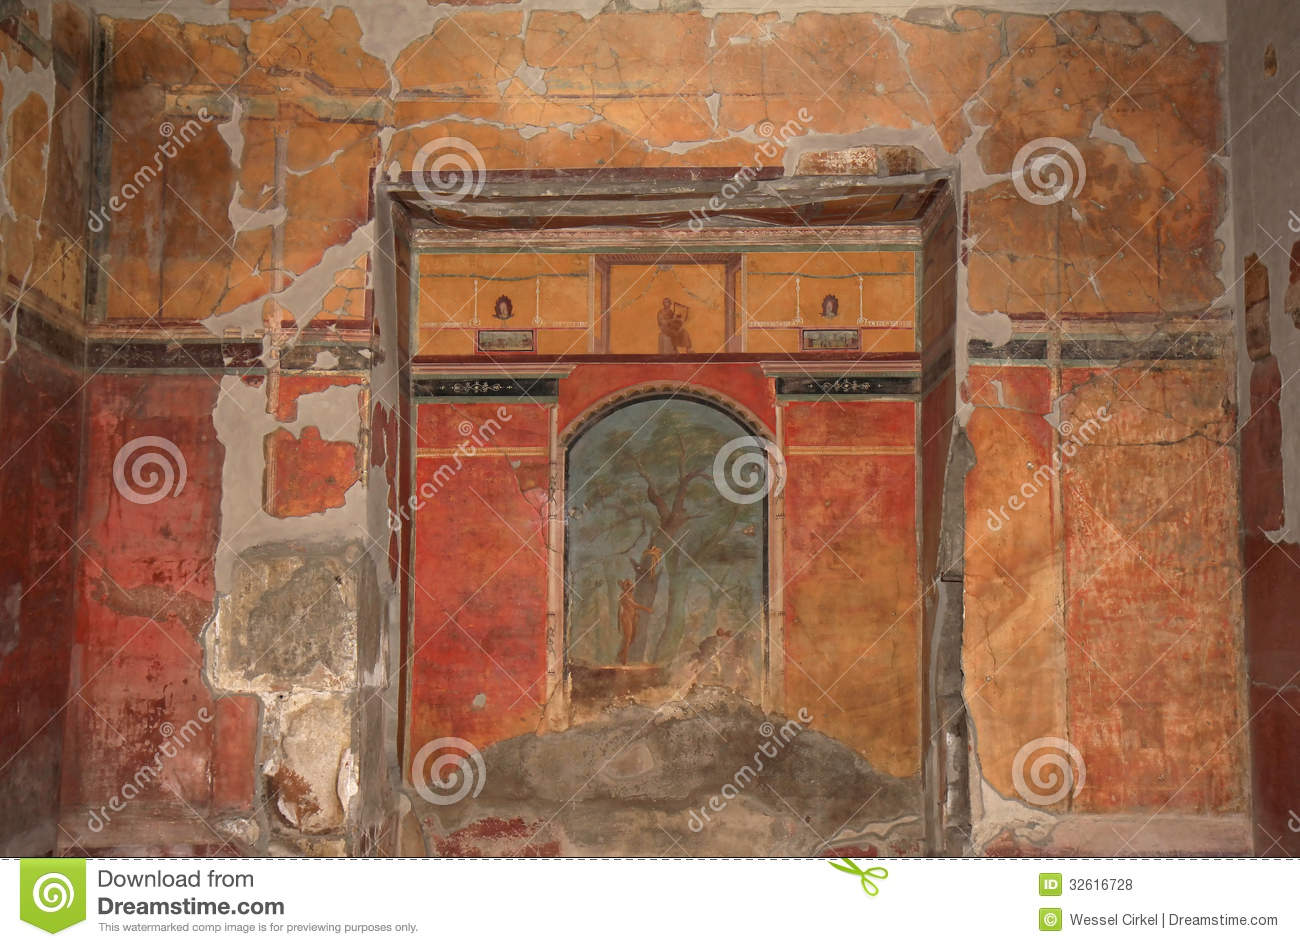 Mural in the roman villa poppaea italy royalty free stock for Ancient roman mural